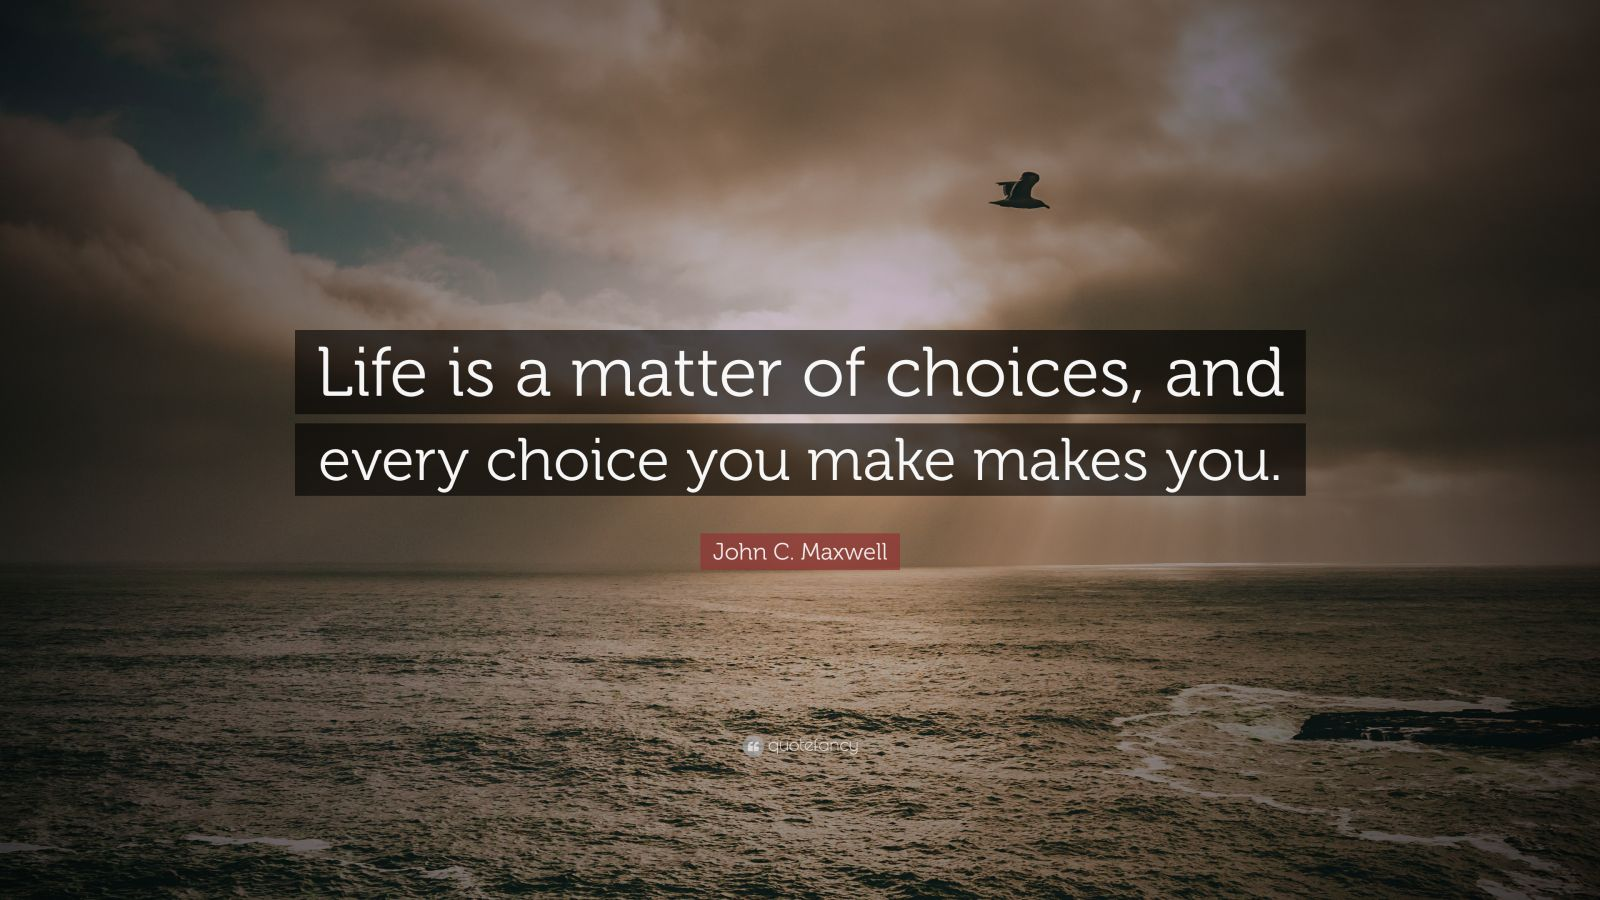 life is a matter of choice